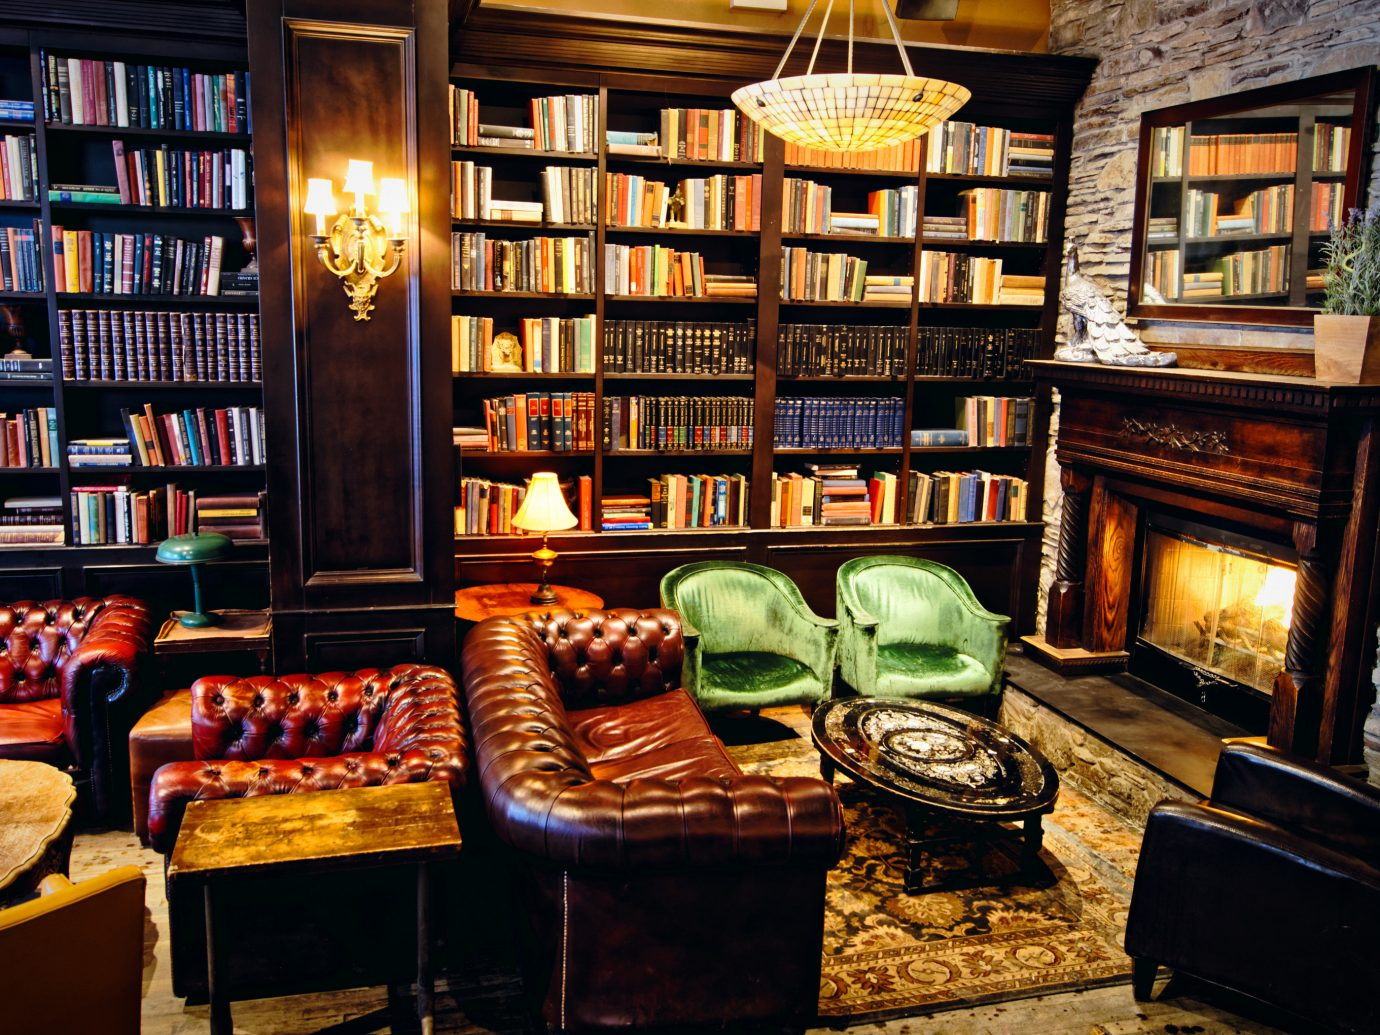 Trip Ideas indoor Living shelf book room building Fireplace home interior design living room estate Bar furniture